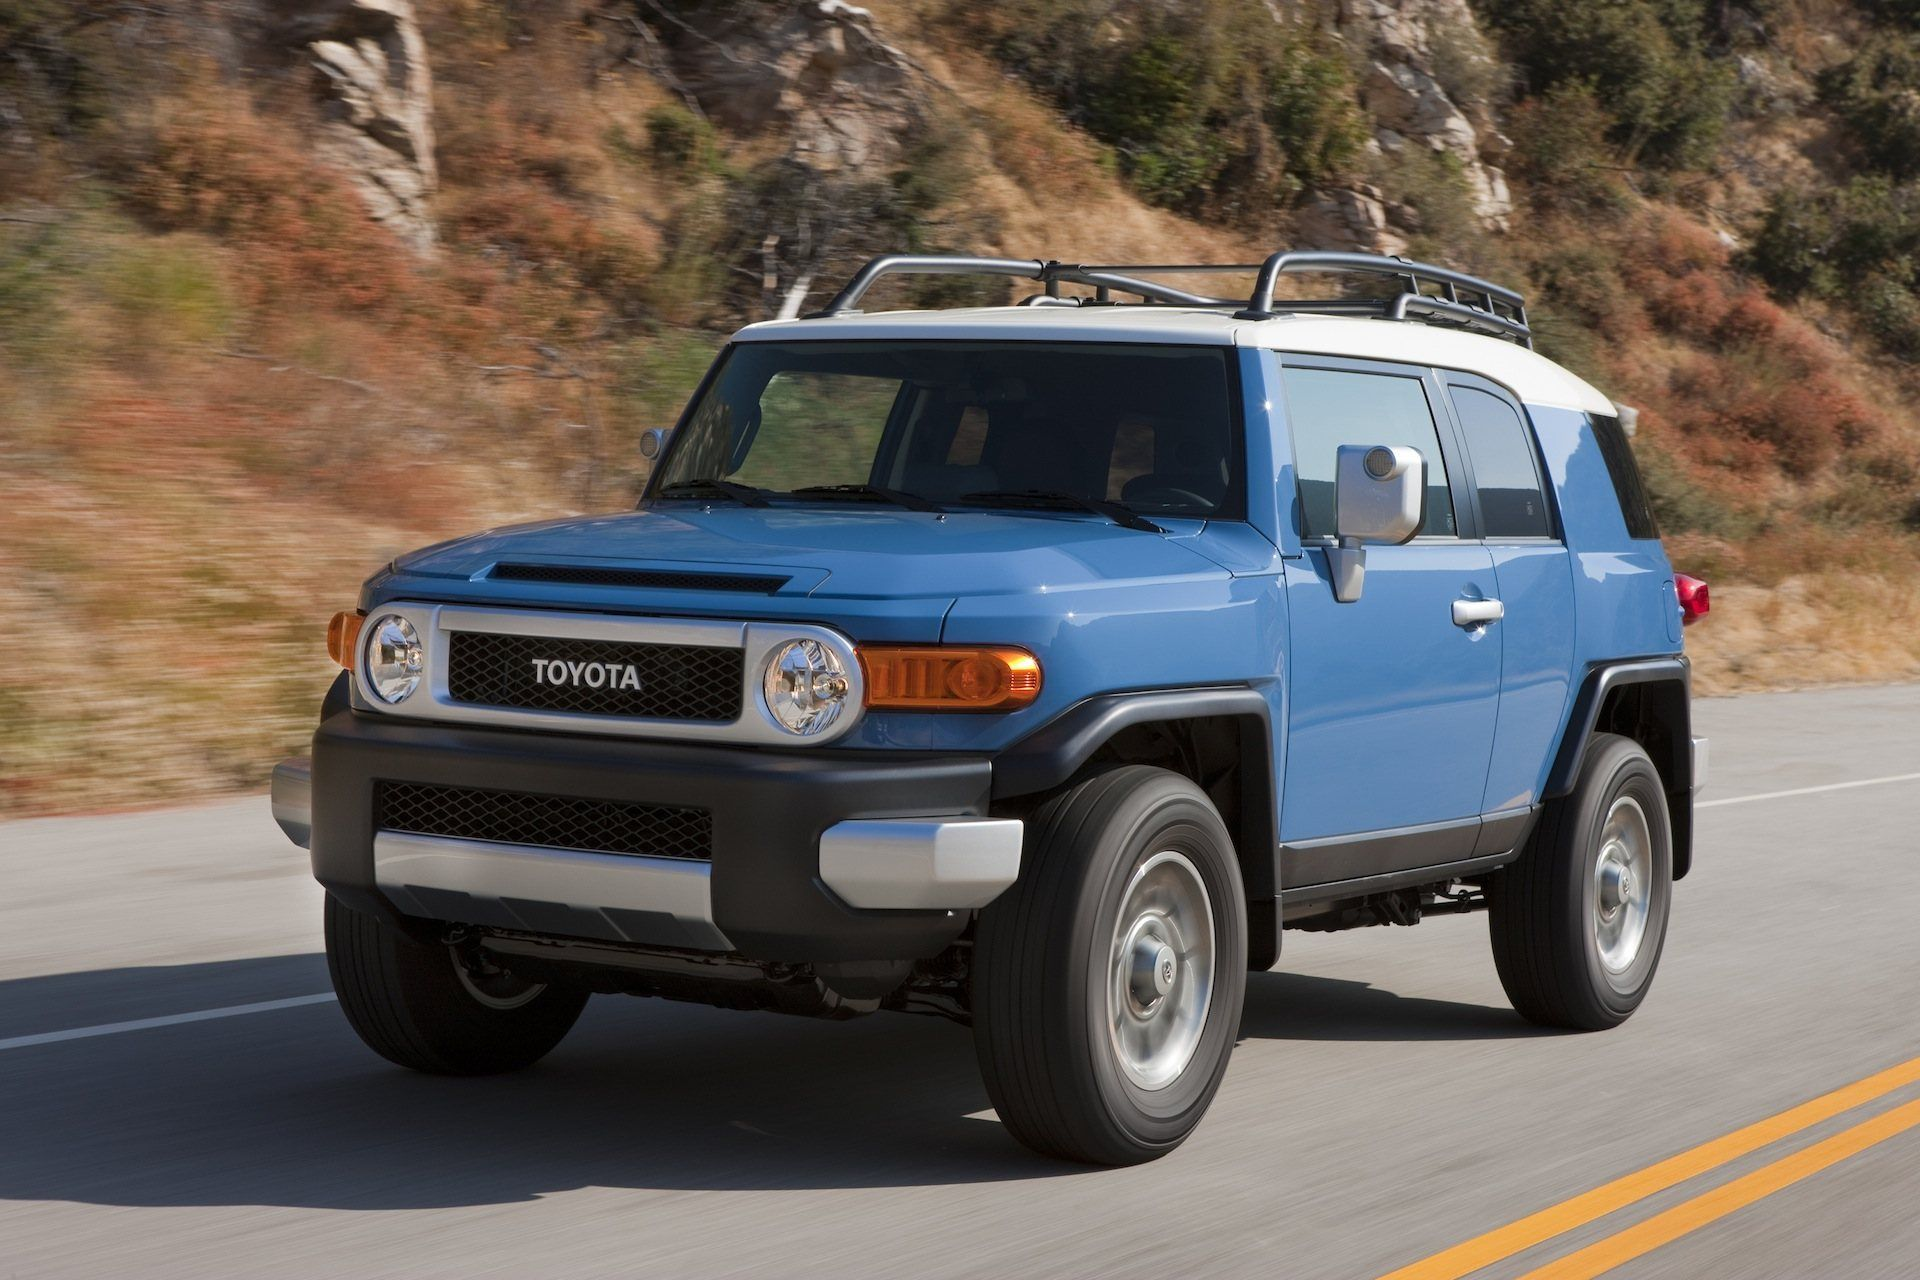 2020 Fj Cruiser Review And Release Date In 2020 Toyota Fj Cruiser Fj Cruiser 2014 Toyota Fj Cruiser